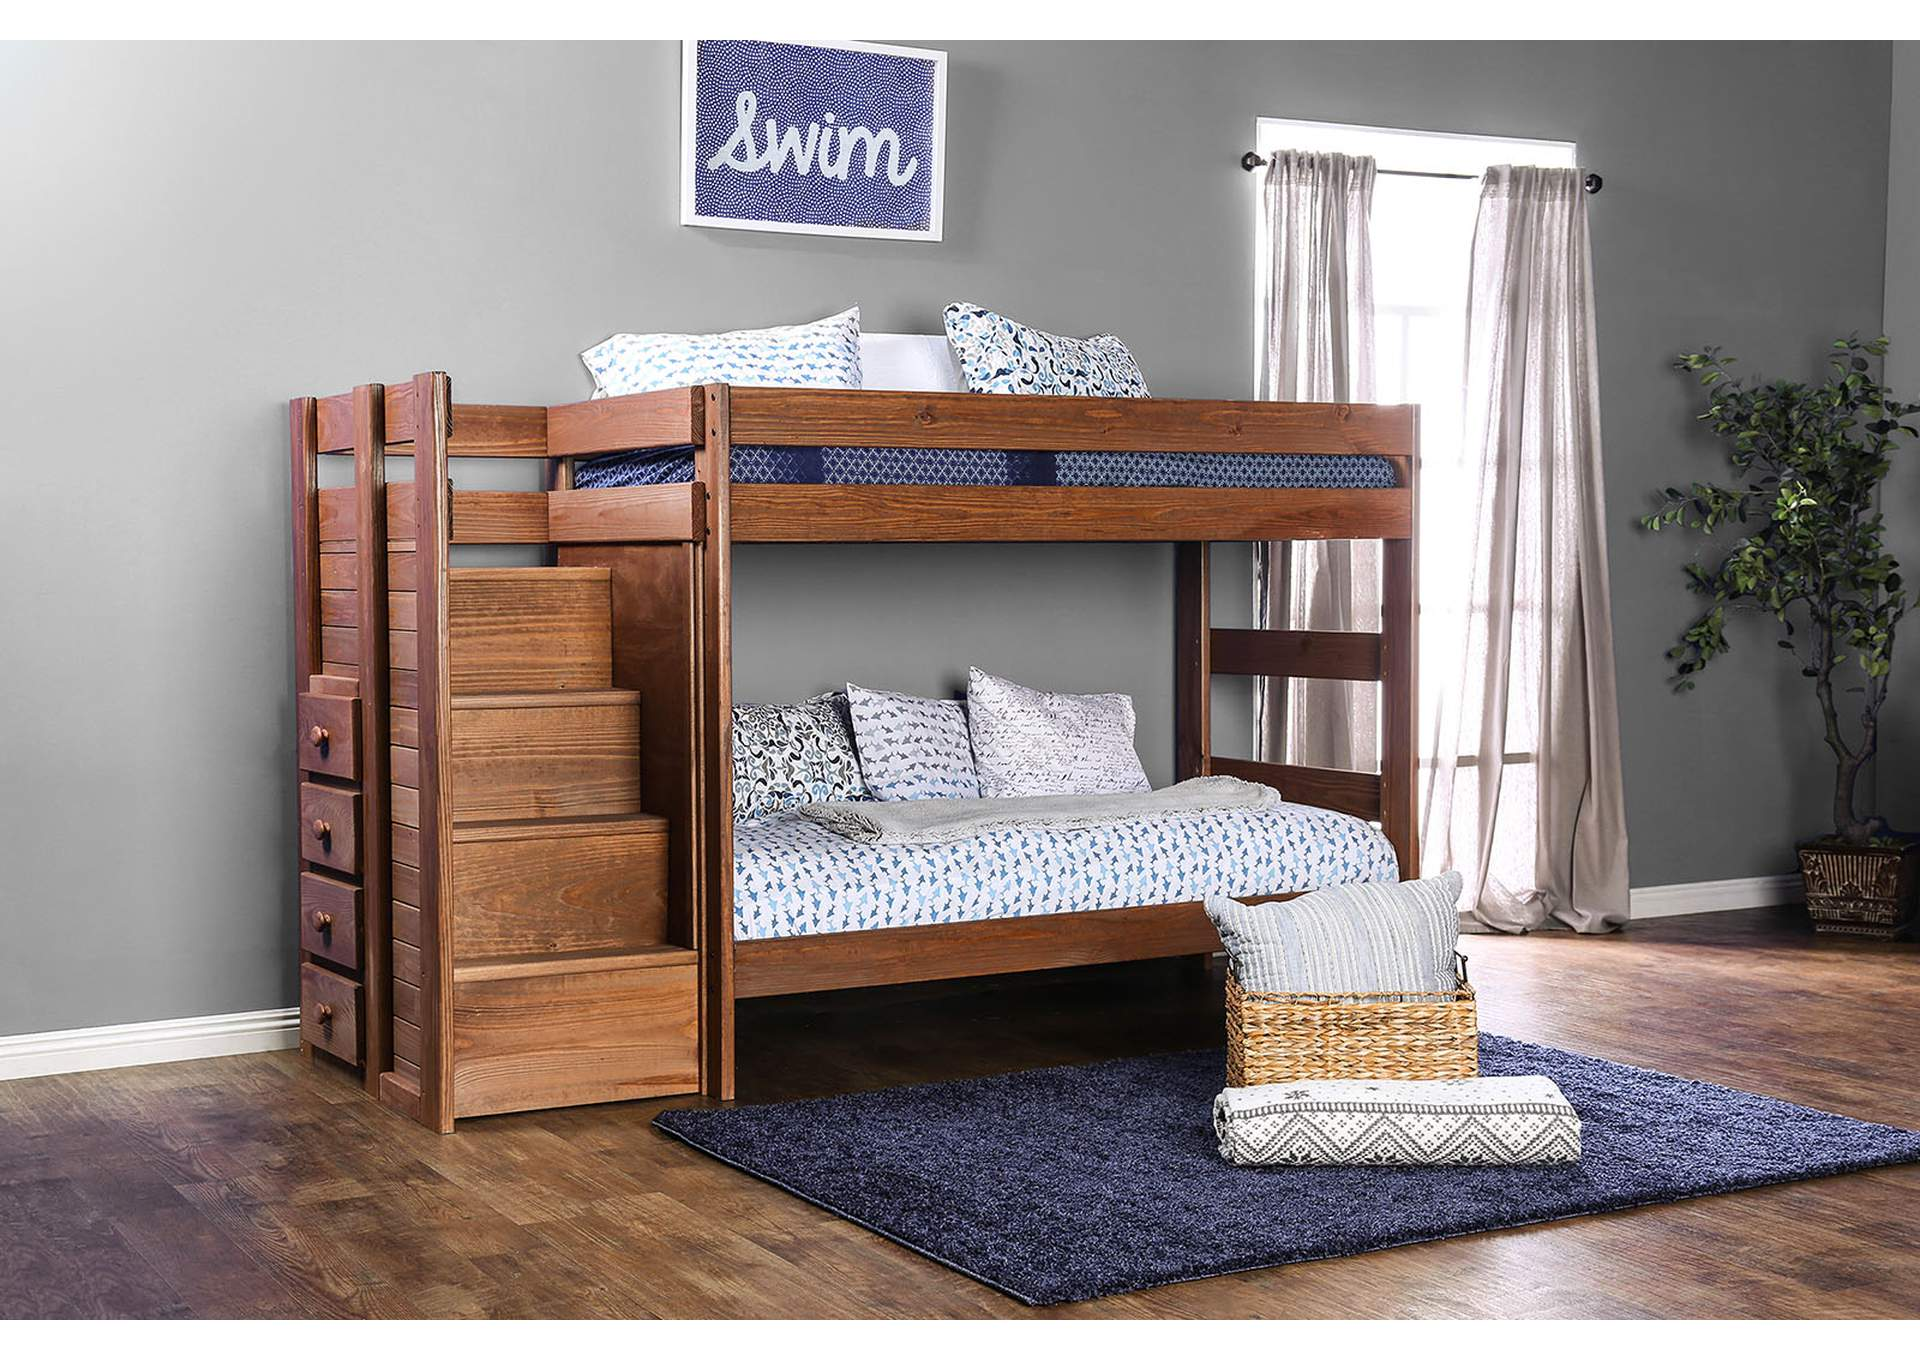 Best Buy Furniture And Mattress Ampelios Twin Twin Bunk Bed